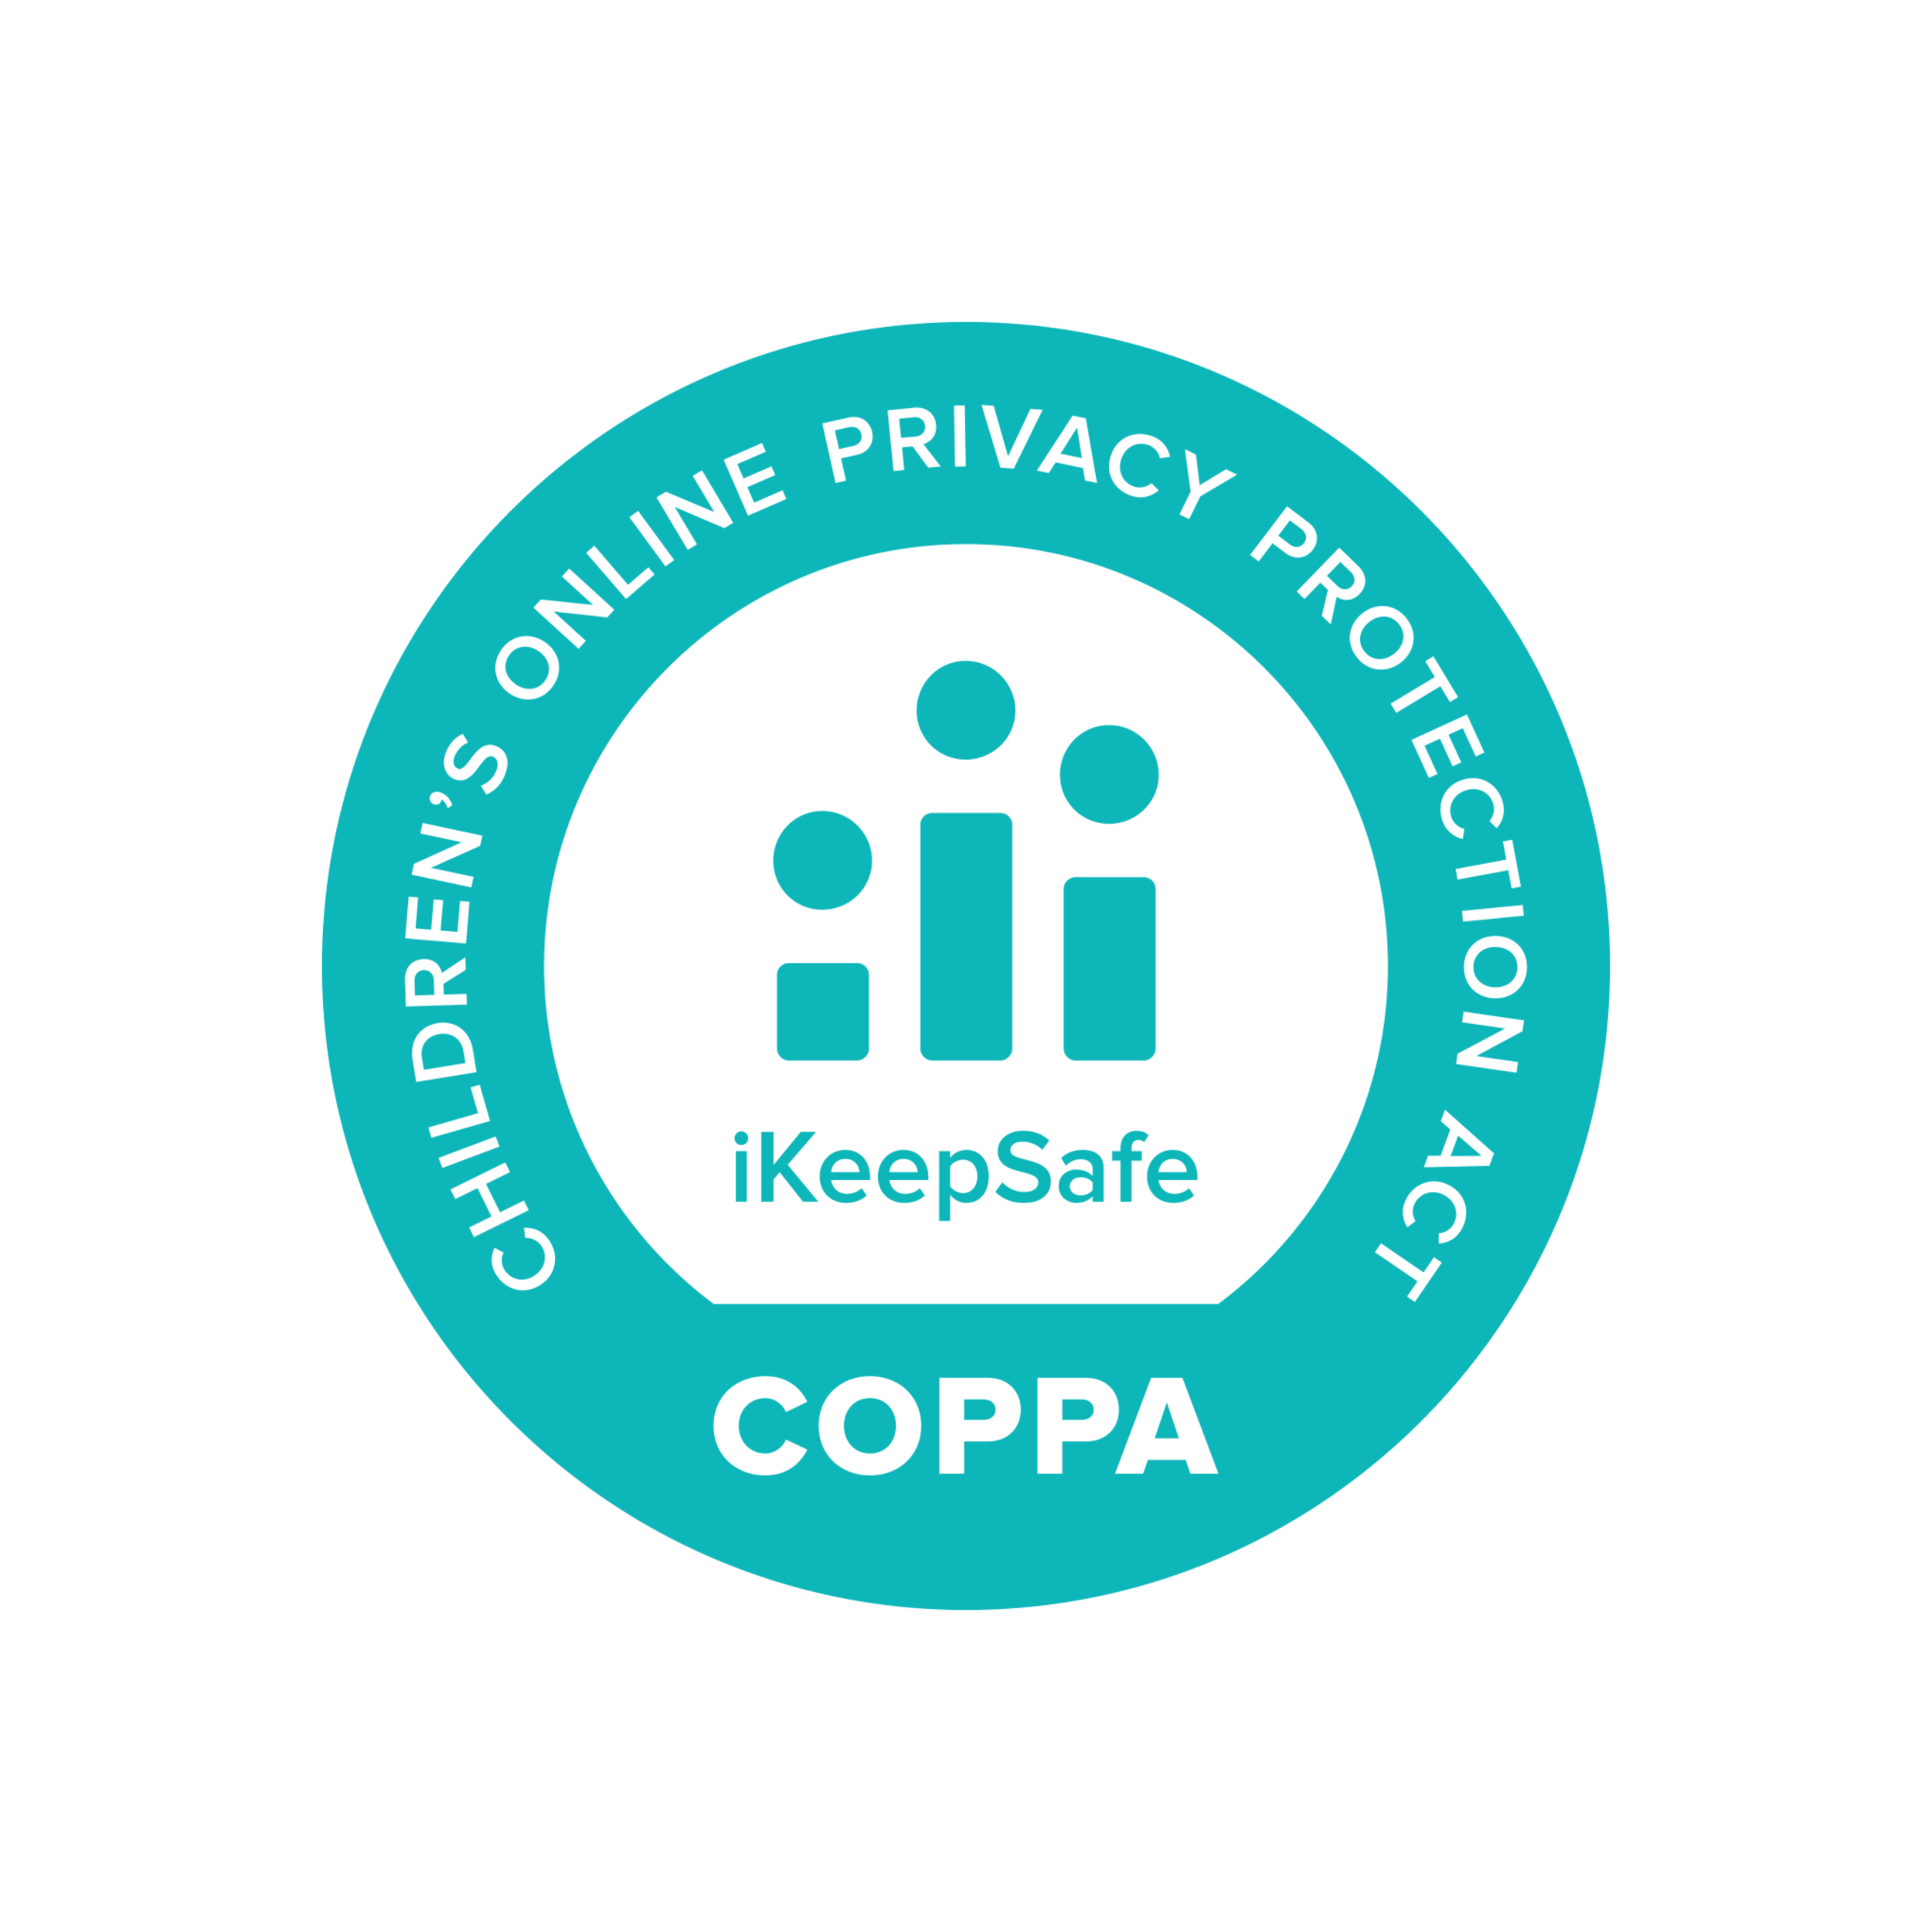 No ads, ever. iKeepSafe has certified Hopscotch's COPPA compliance and practices for kids' protection and safety. -